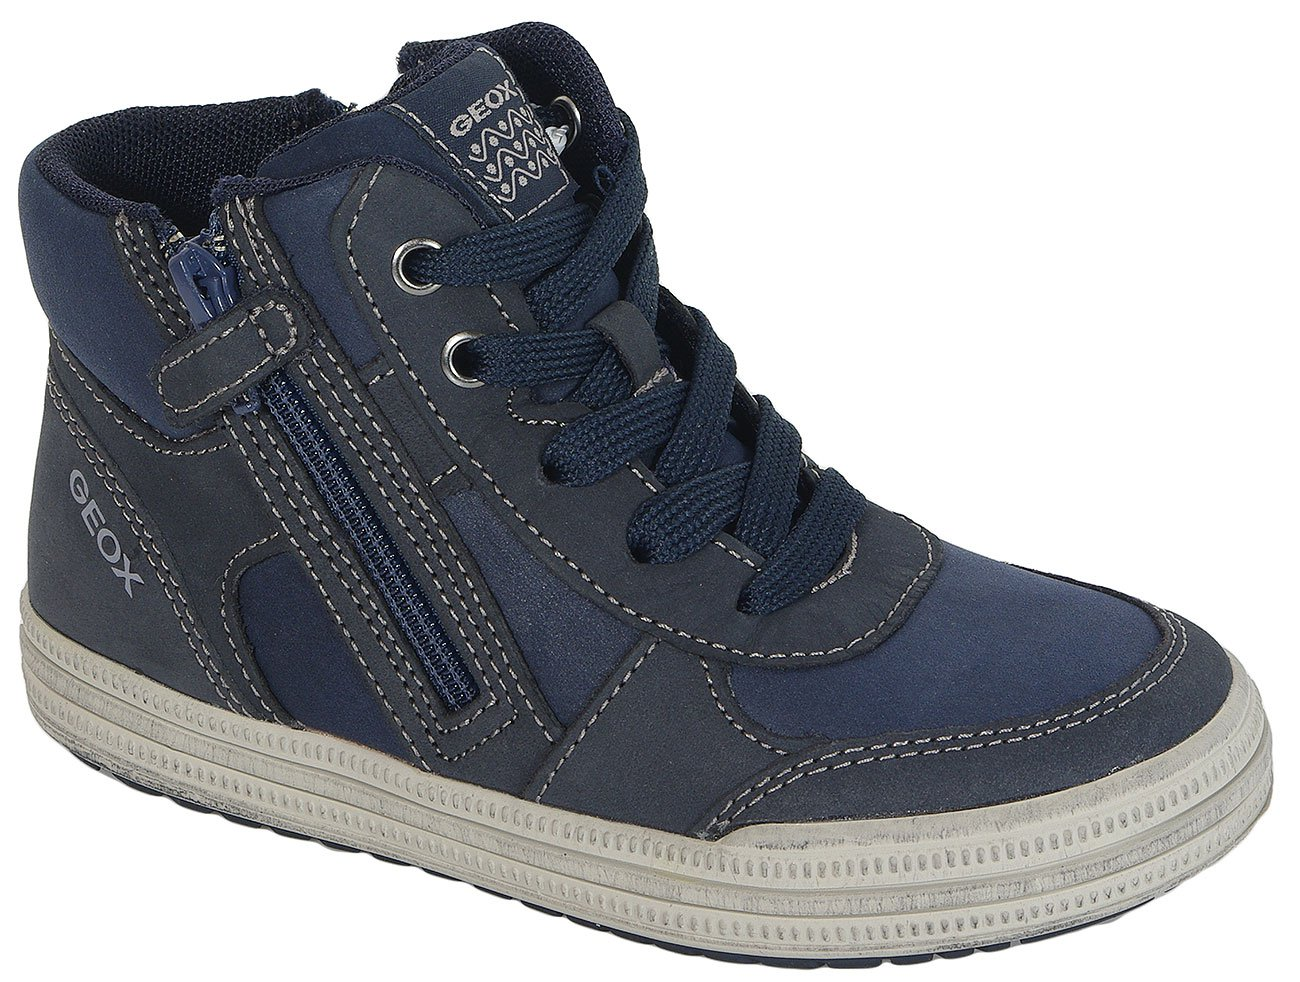 GEOX Elvis B sneakers Synt. Lea+Nbk Buff. Navy/Grey